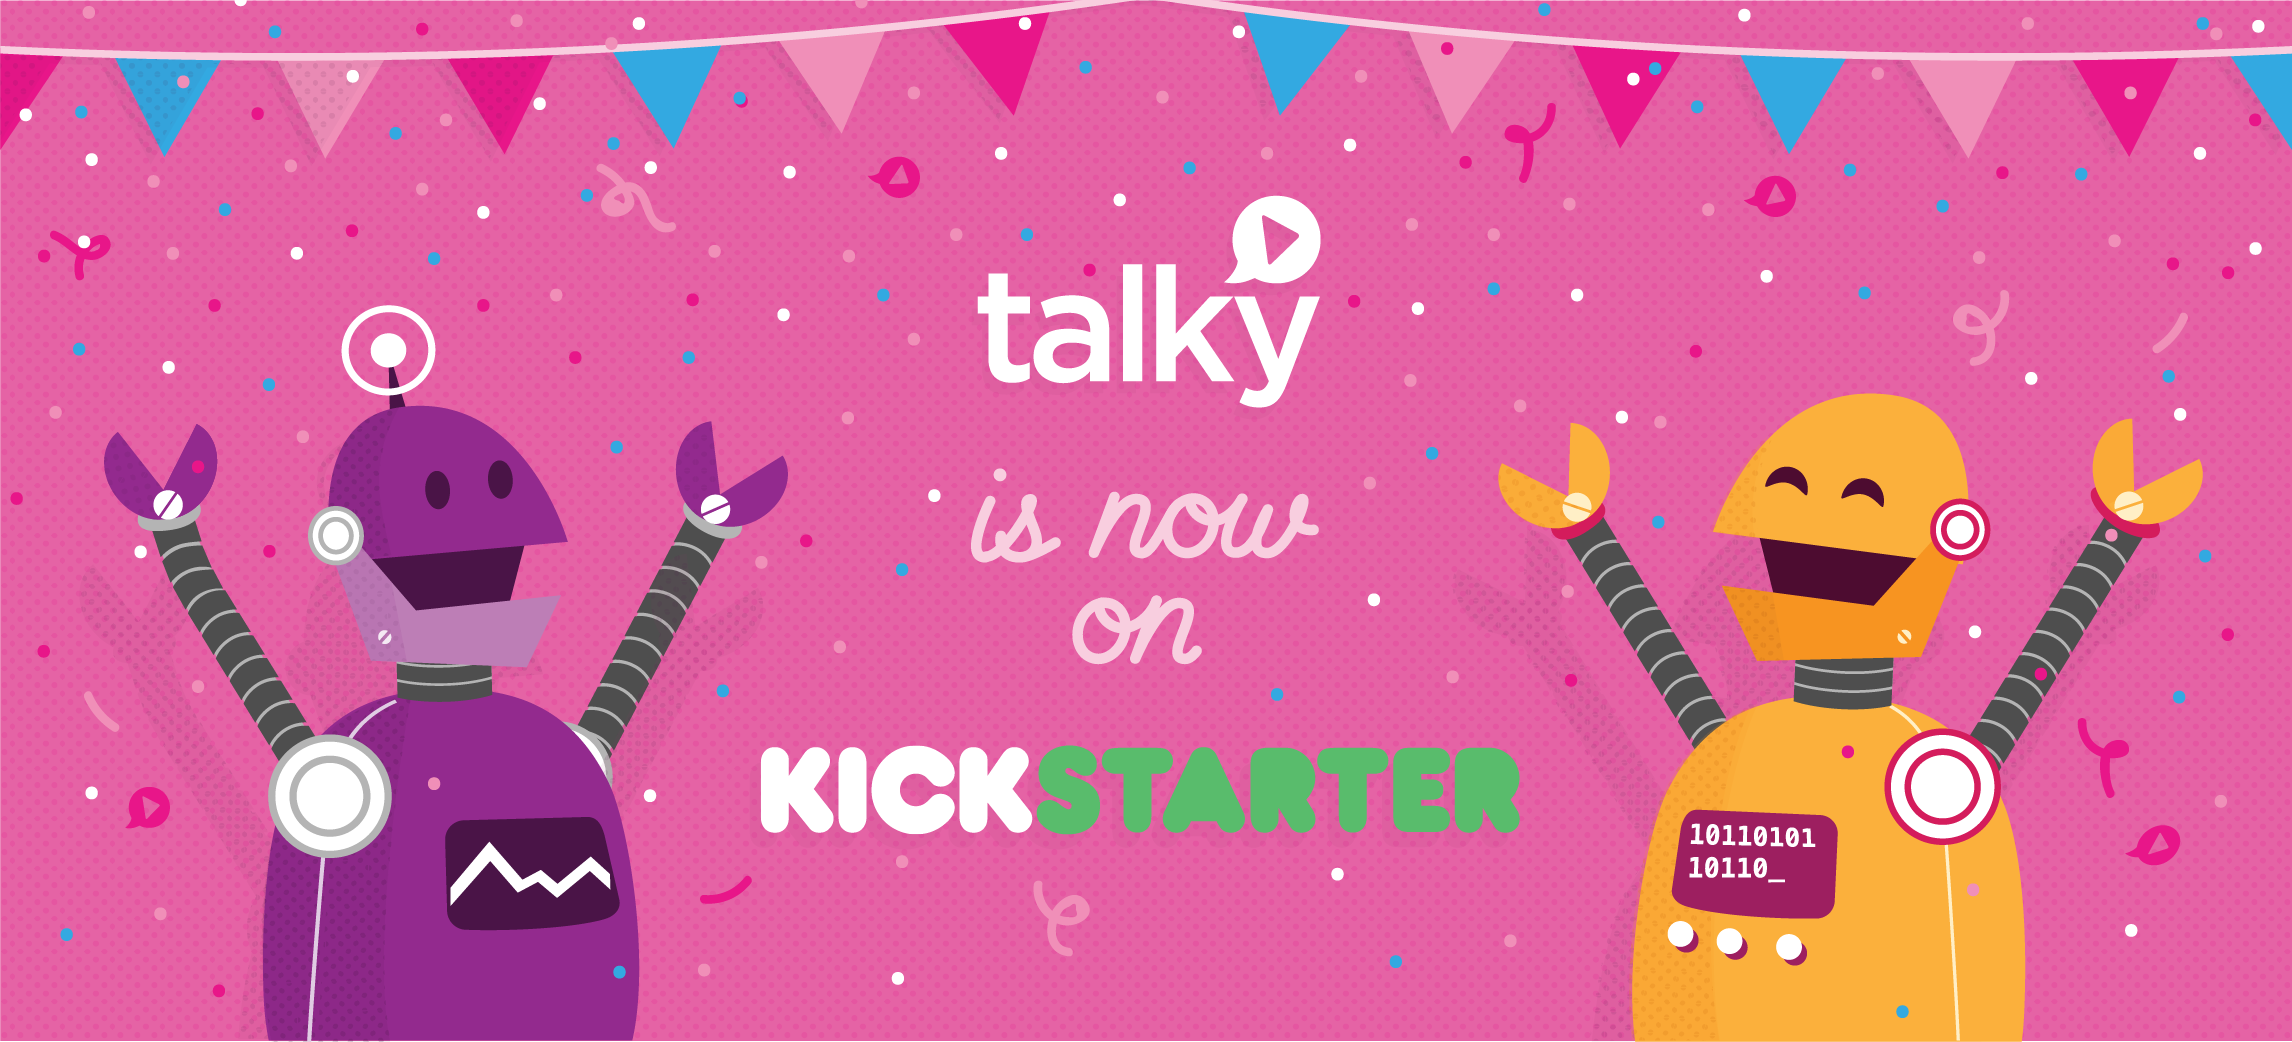 Talky Kickstarter is live